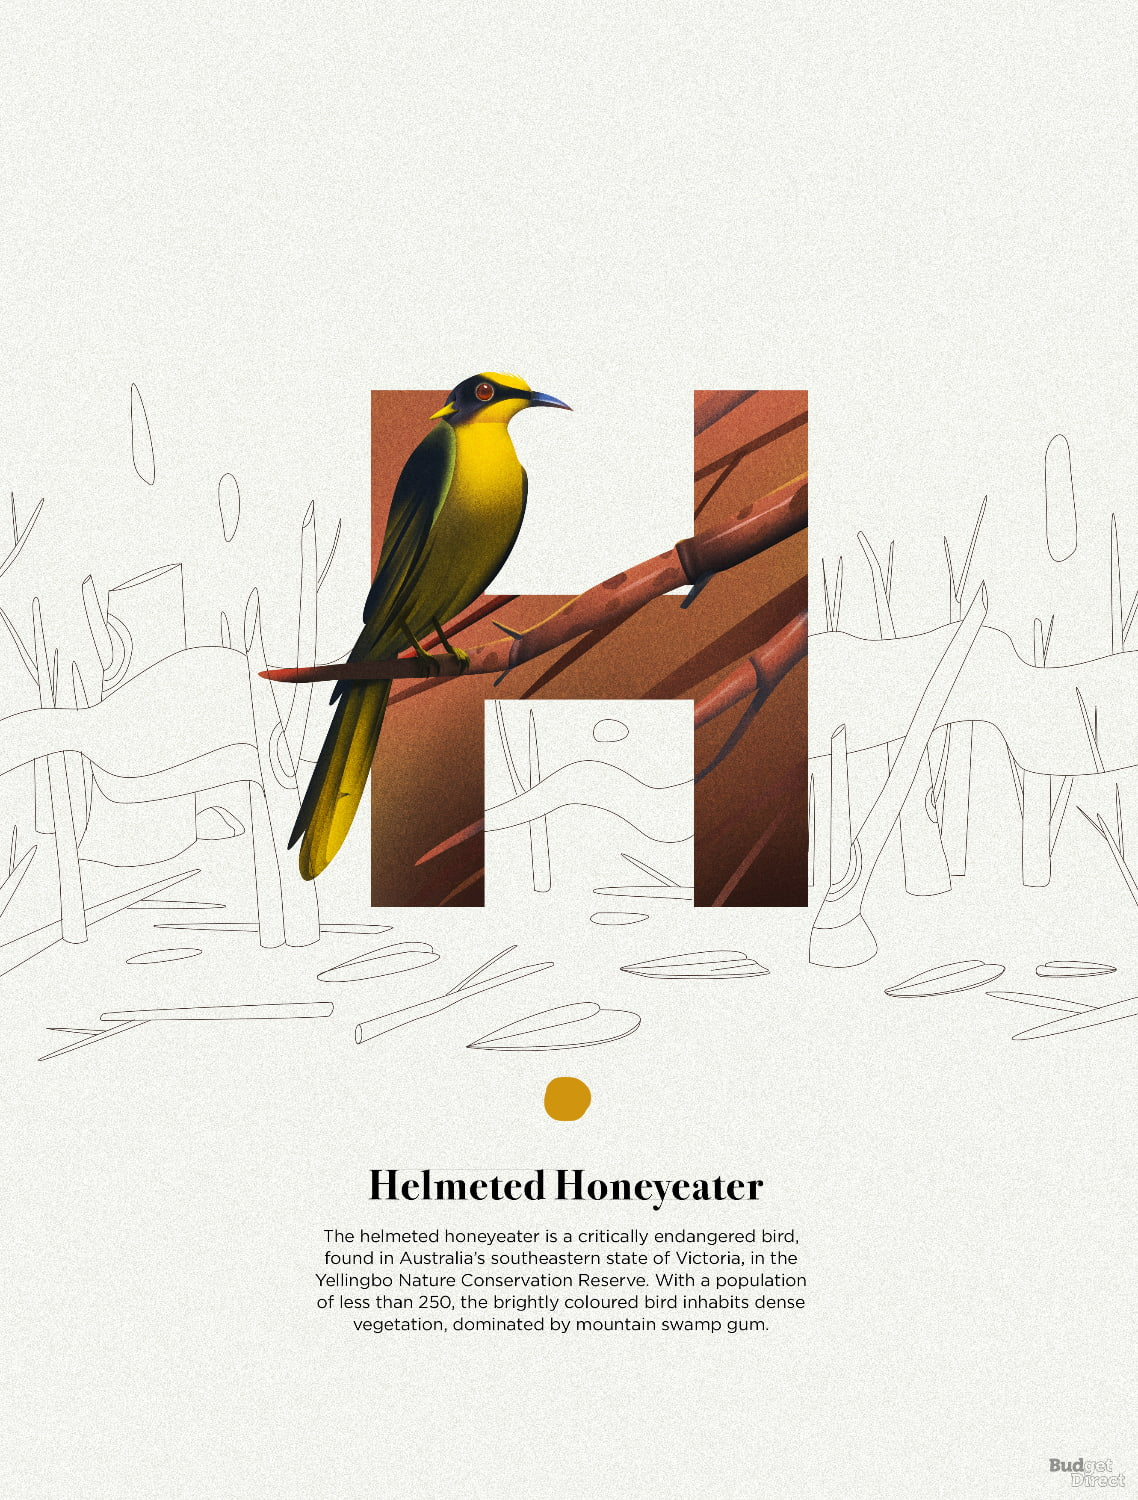 H is for Helmeted Honeyeater